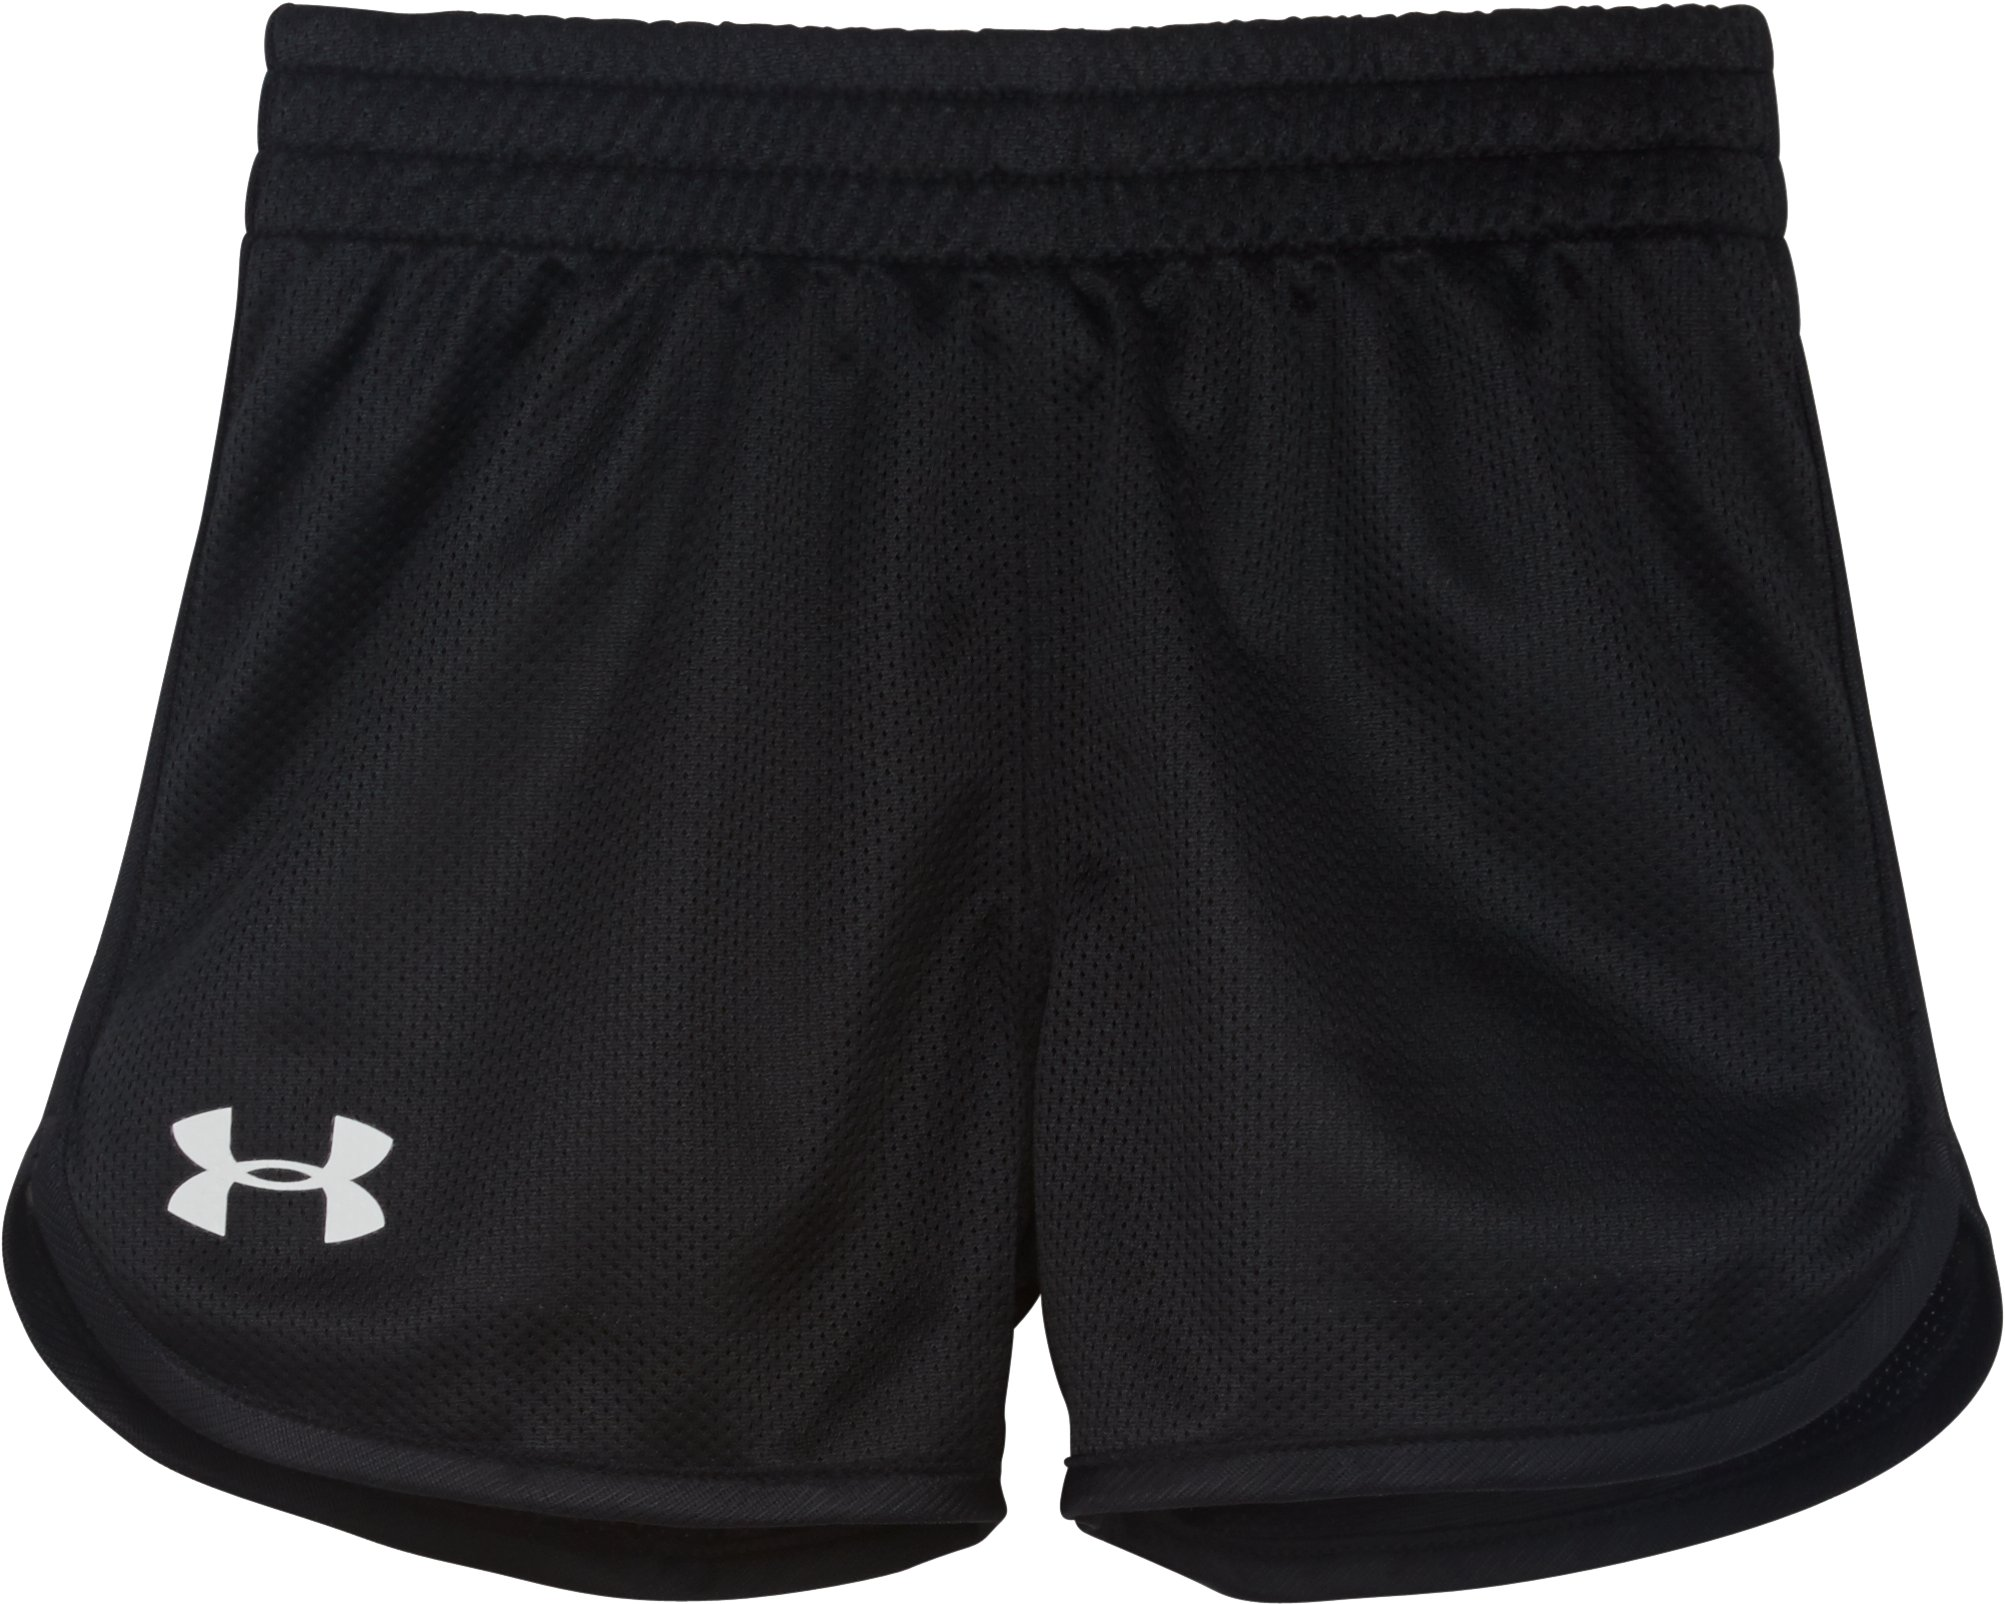 Girls' Toddler UA Essential Shorts, Black